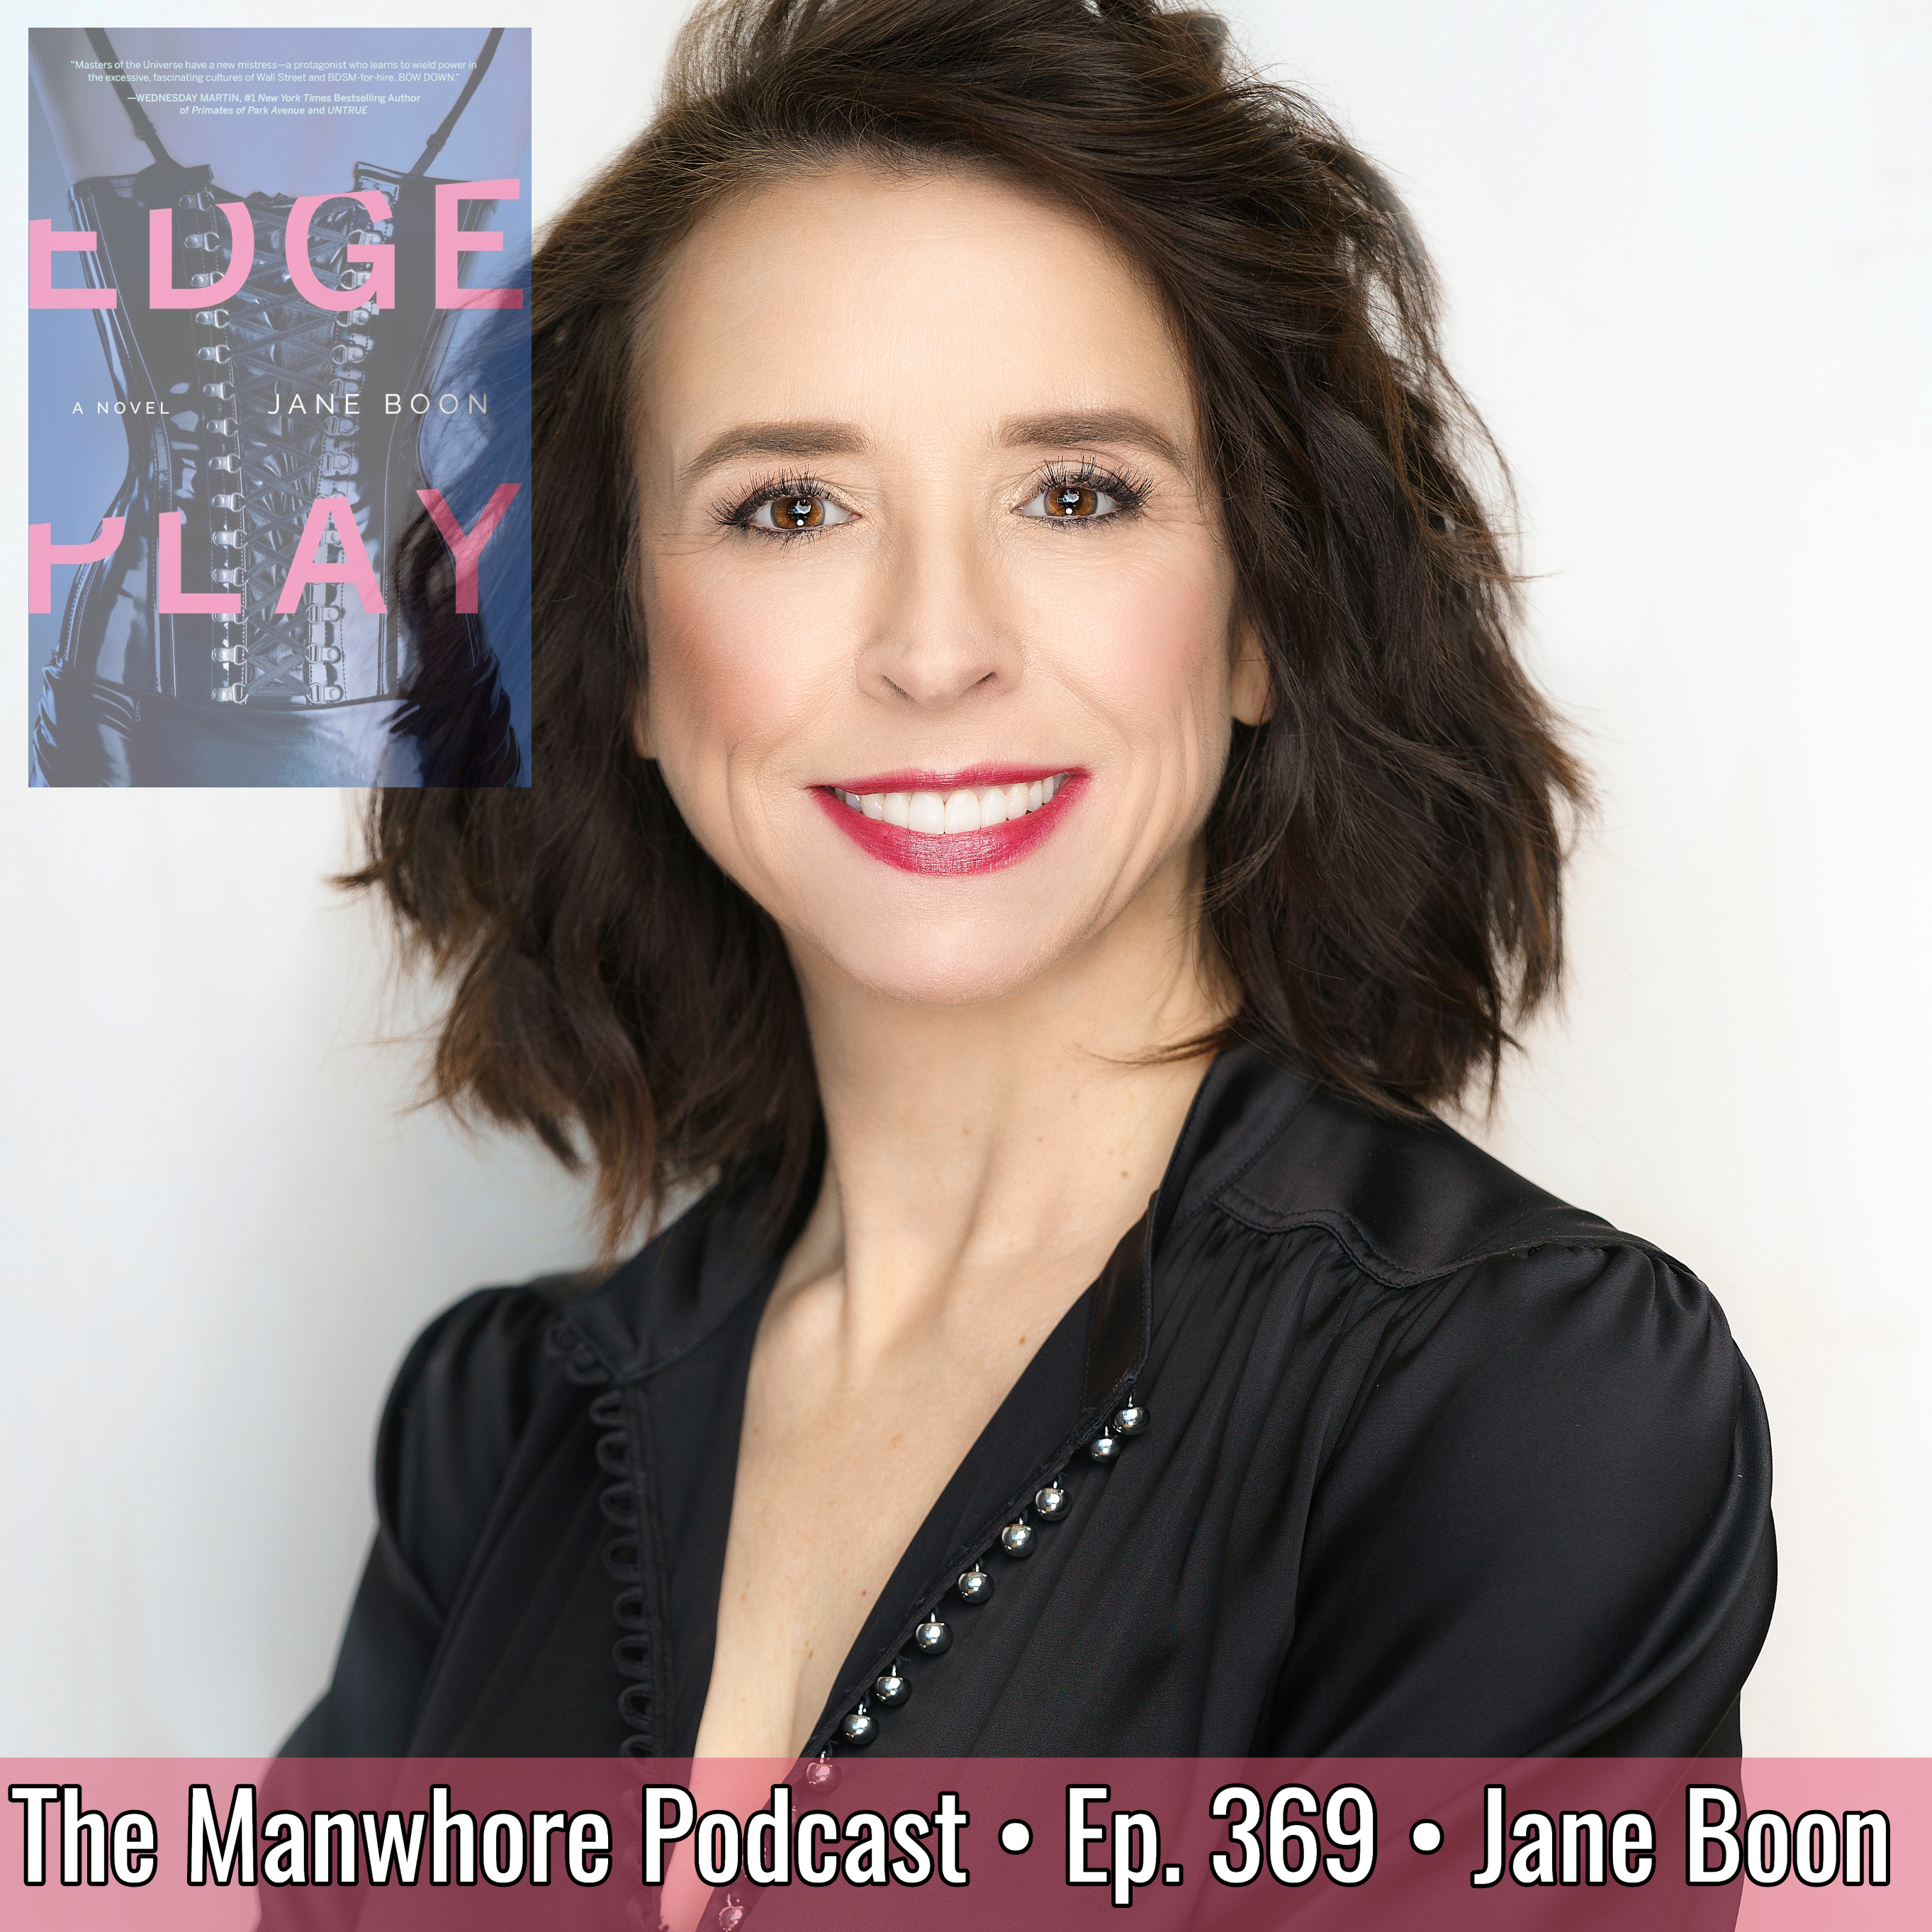 The Manwhore Podcast: A Sex-Positive Quest - Ep. 369: From AOL Chat Rooms to BDSM Parties with Jane Boon